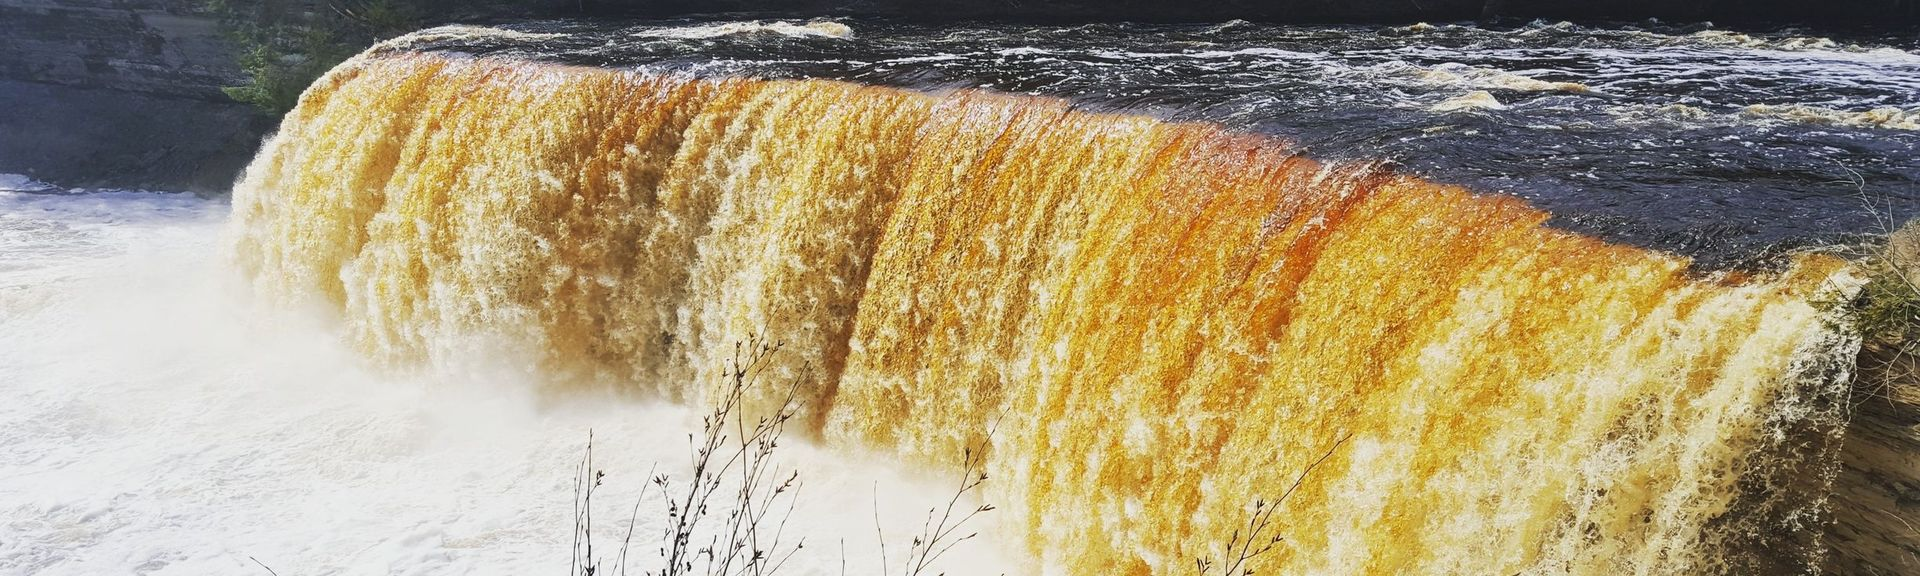 Tahquamenon Falls State Park, Paradise, Newberry, Michigan, United States of America